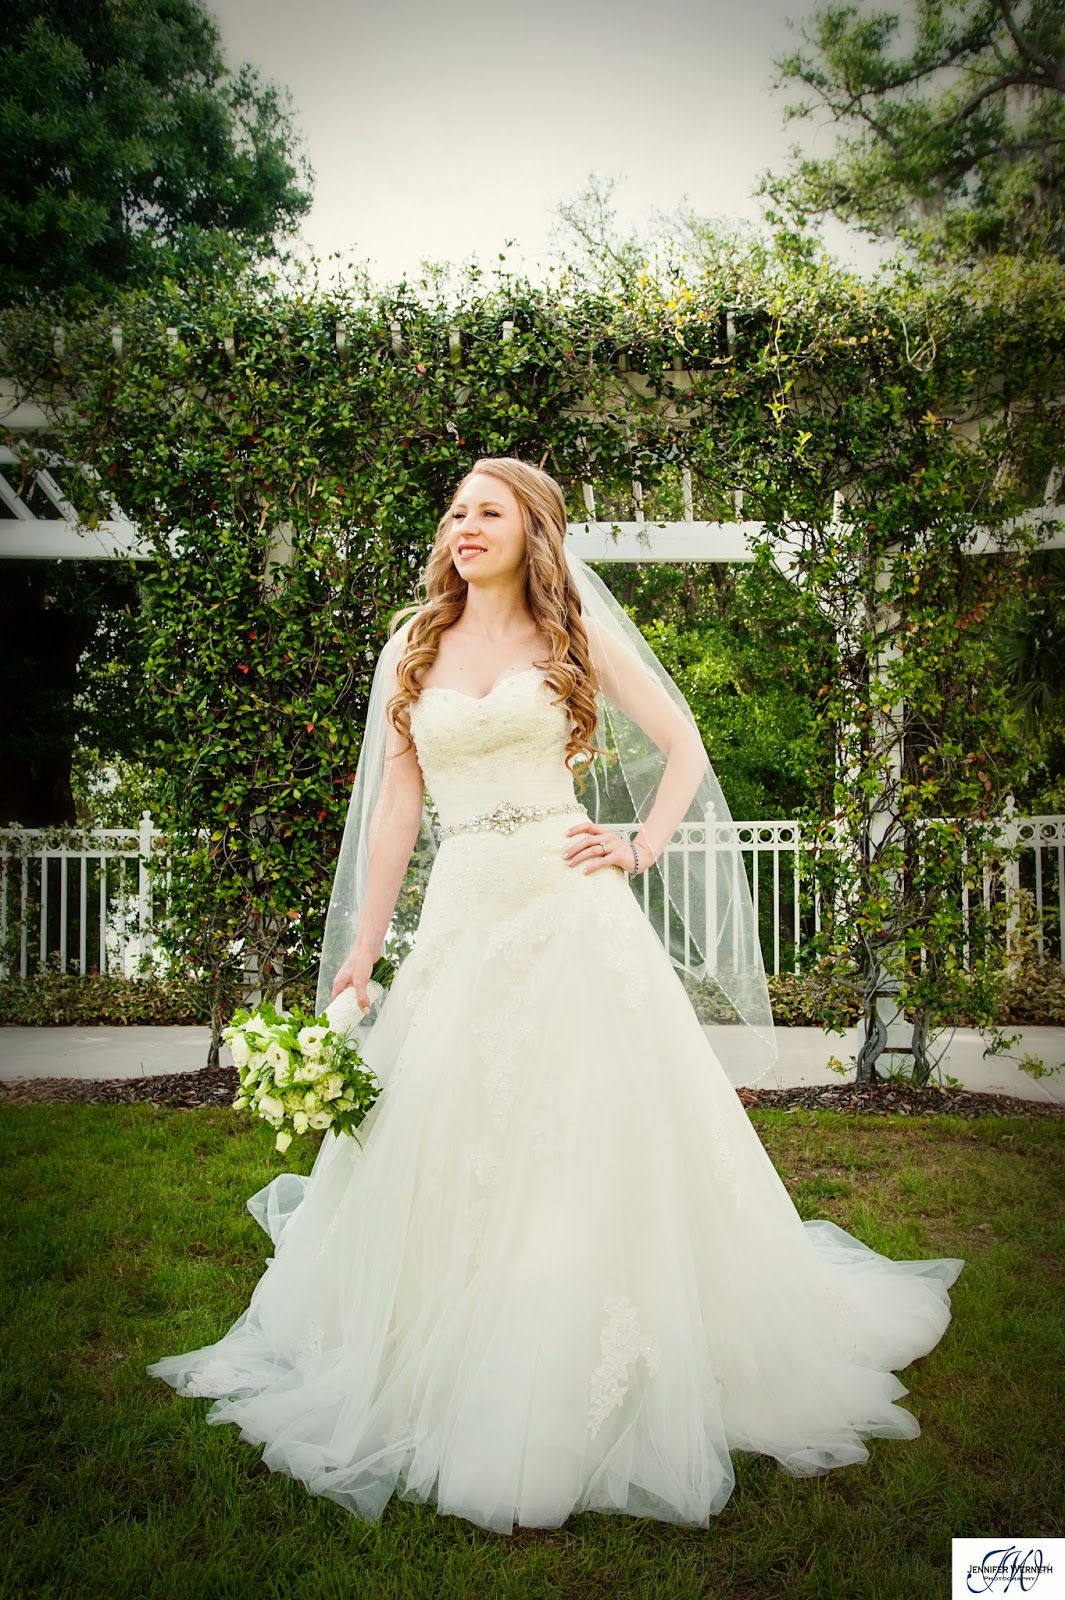 Wedding Photography Lake Mary Events Center Cammy and Steve